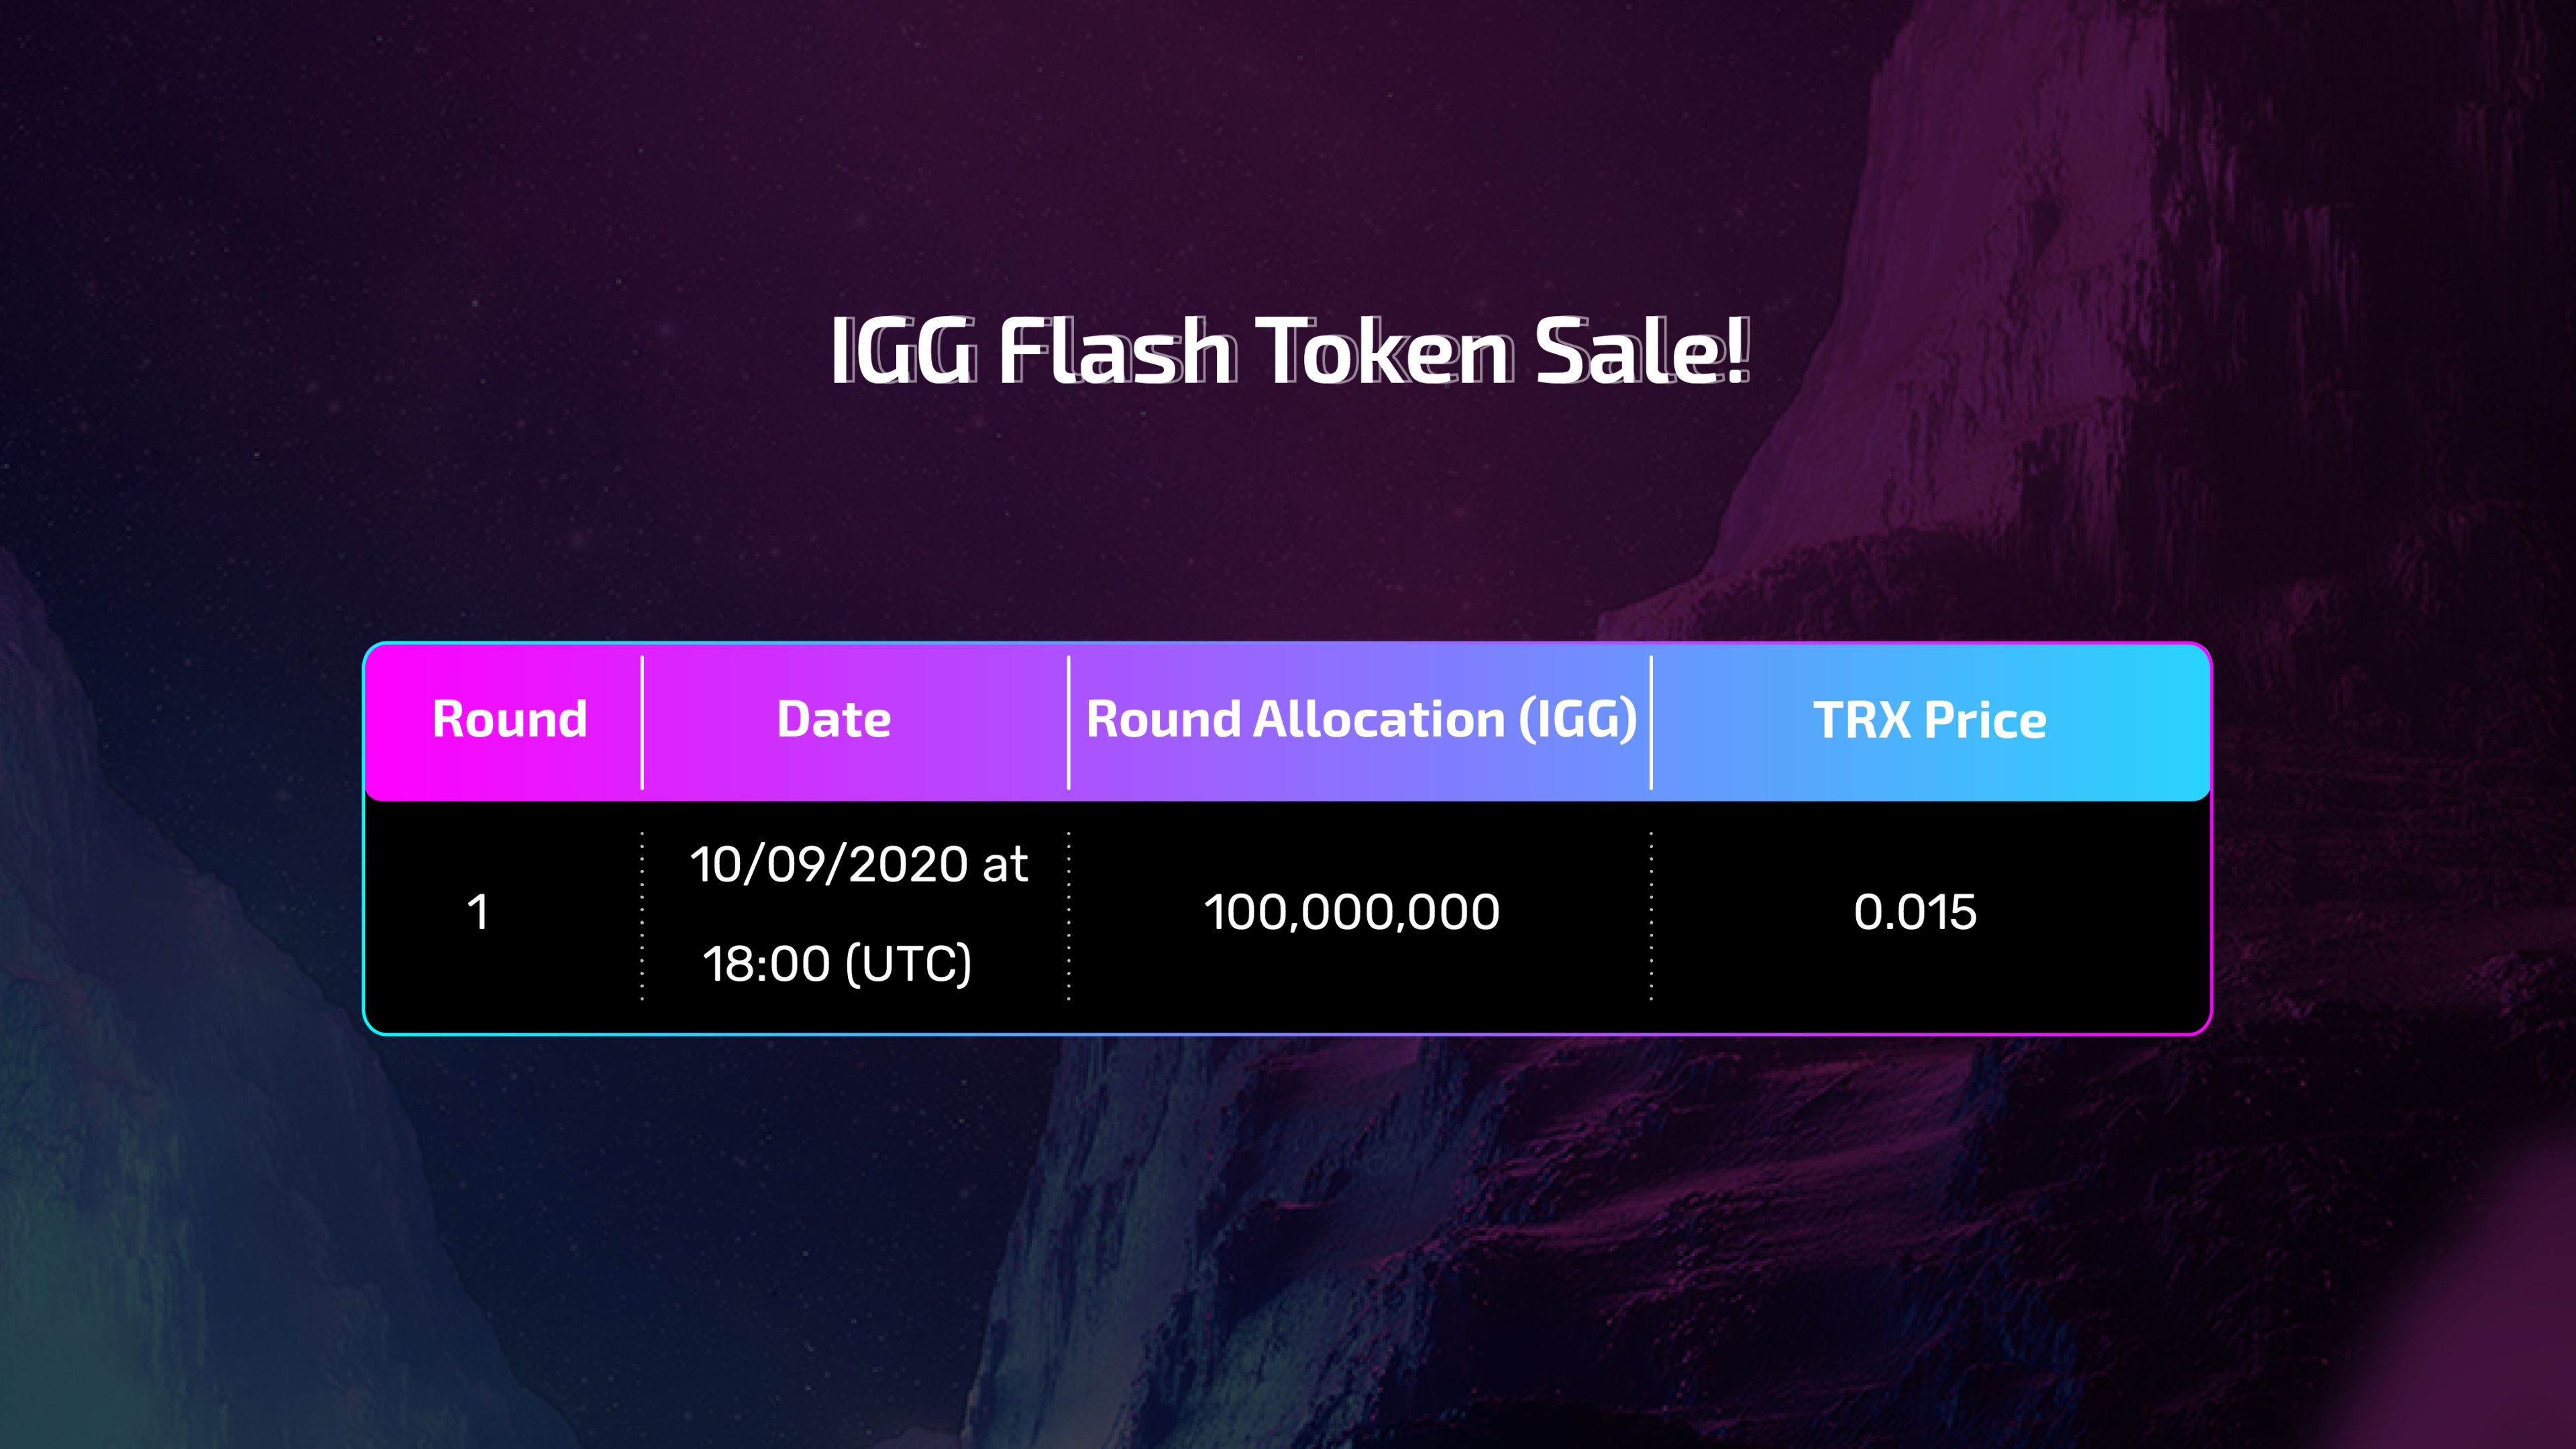 The allocation for Round 1 will be available to GFT holders only!